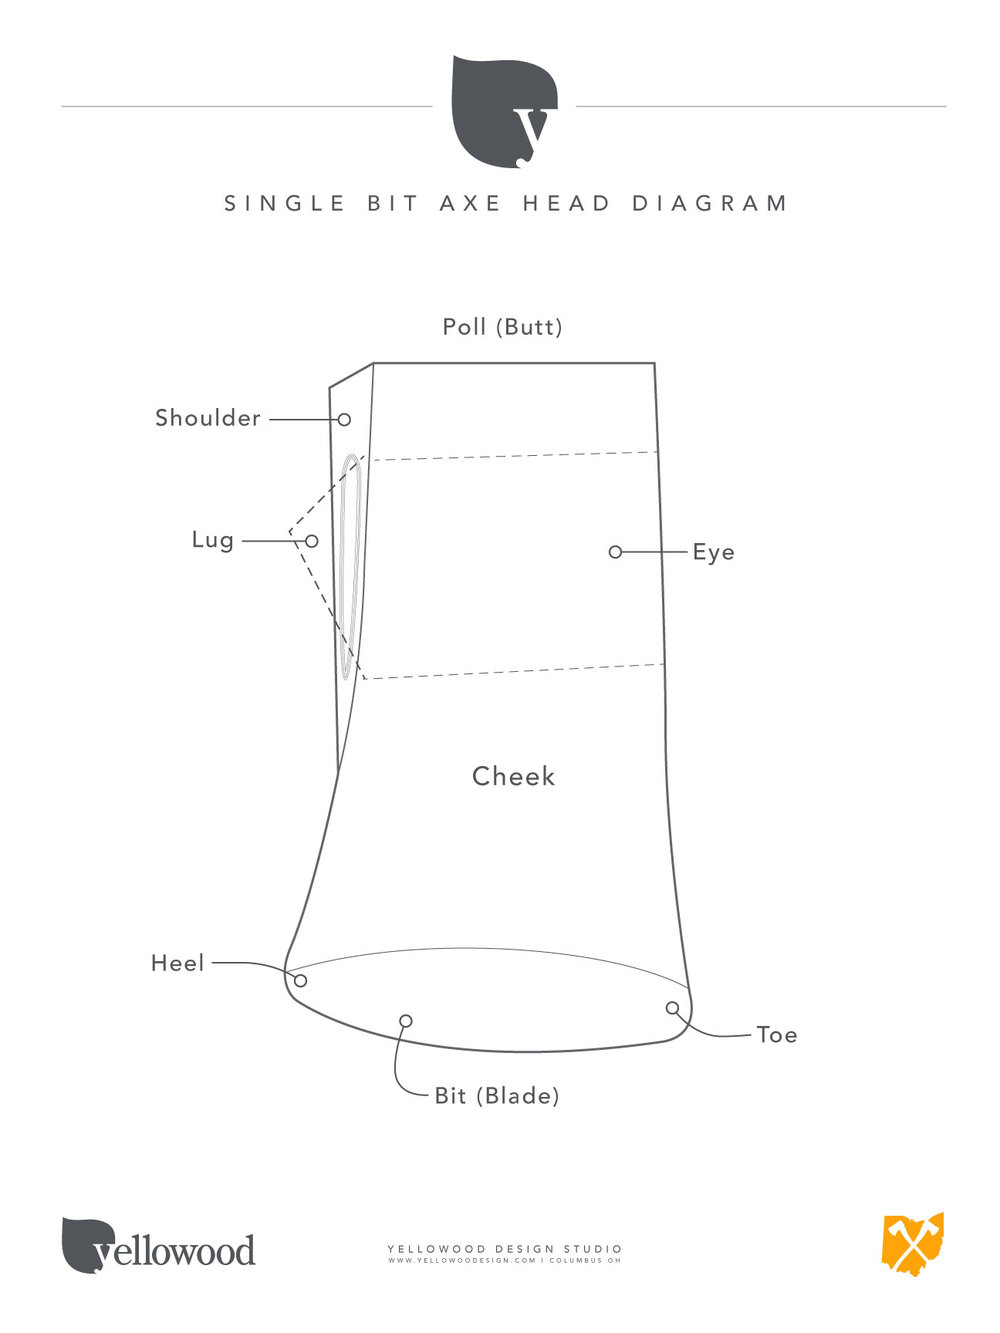 Single bit axe head diagram.